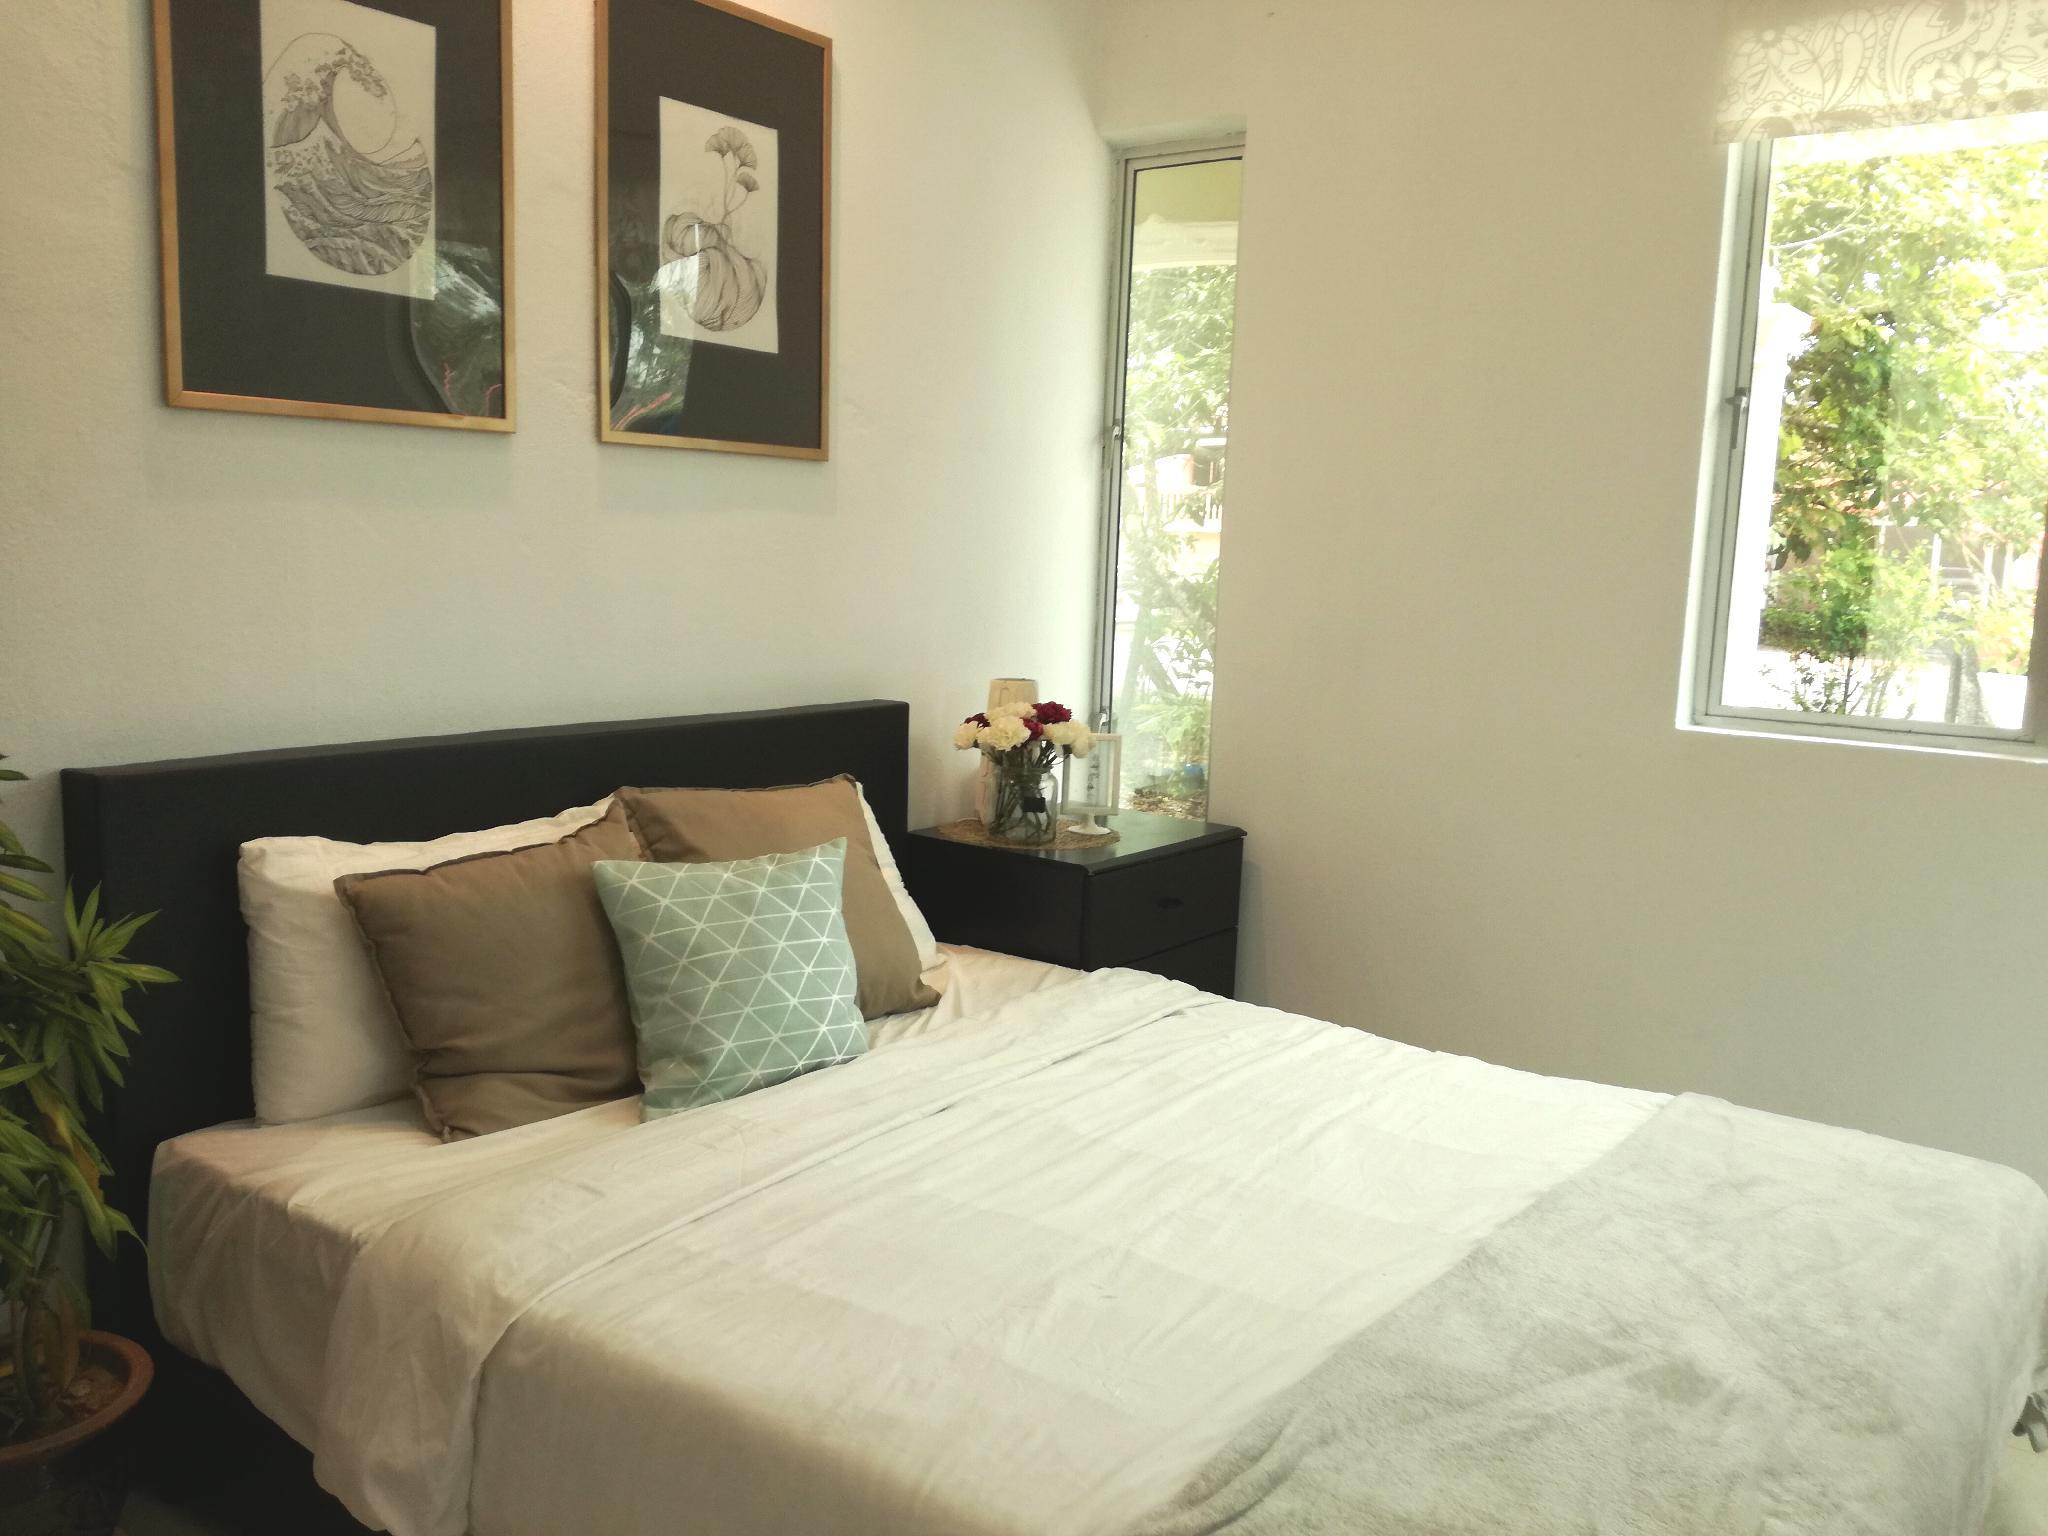 3BR Staycation 8 pax with unifi @ Temonyong 76th